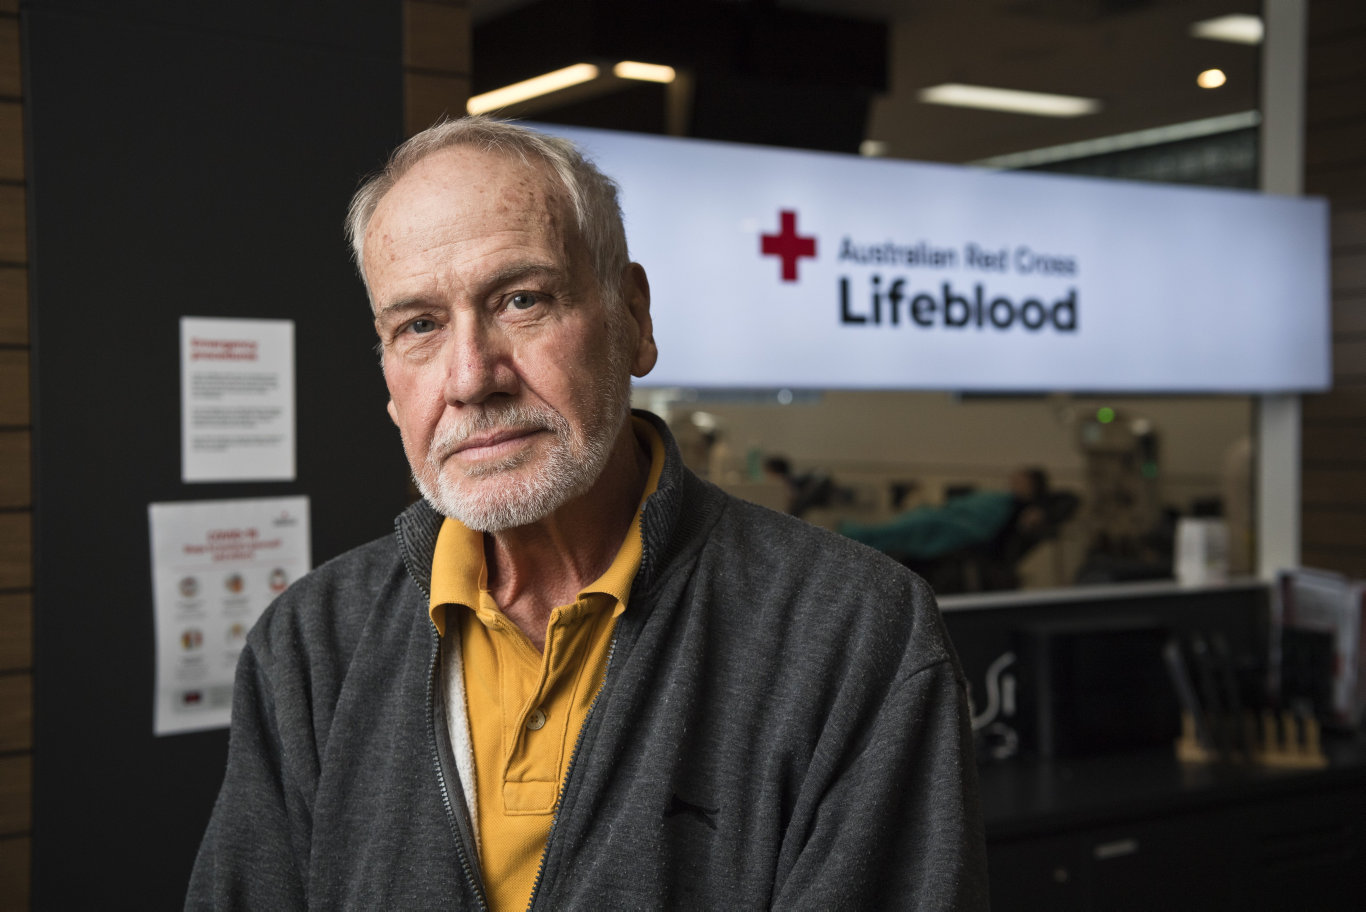 Former Toowoomba magistrate Alan Yorkston is part of a Lifeblood convalescent plasma collection program for people who have recovered from coronavirus COVID-19, Tuesday, May 19, 2020. Picture: Kevin Farmer